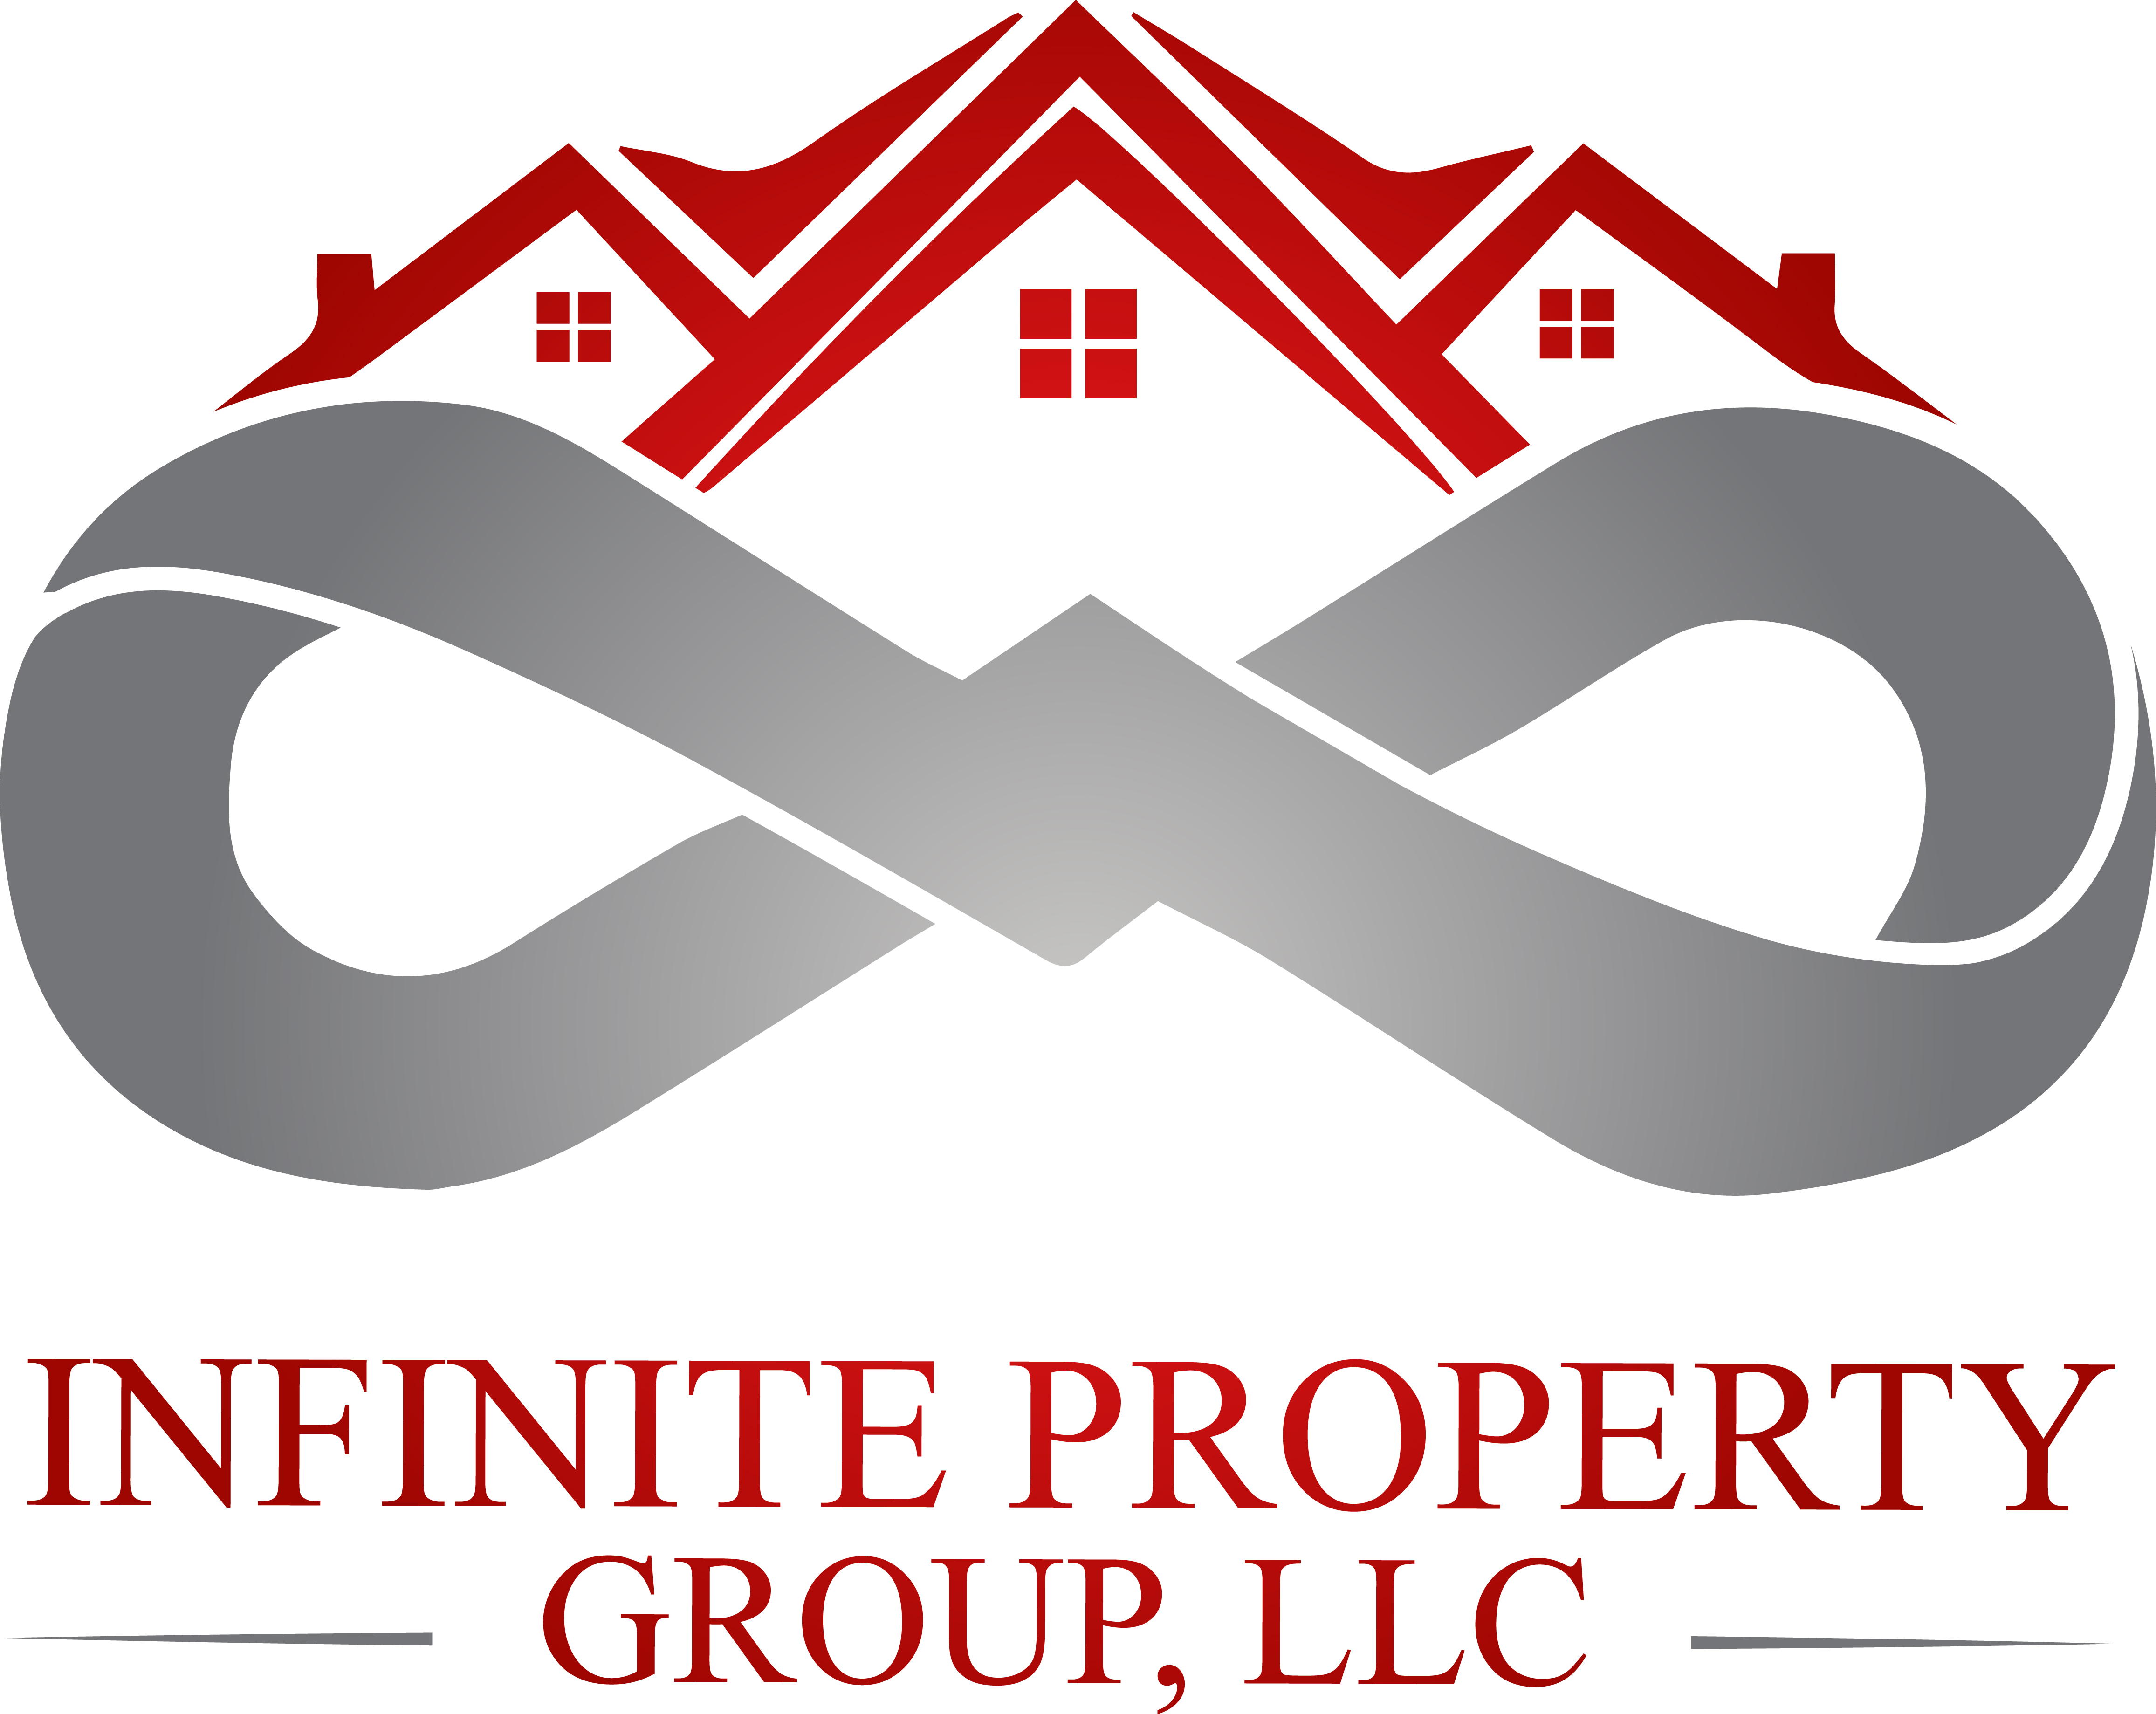 Infinite Property Group, LLC